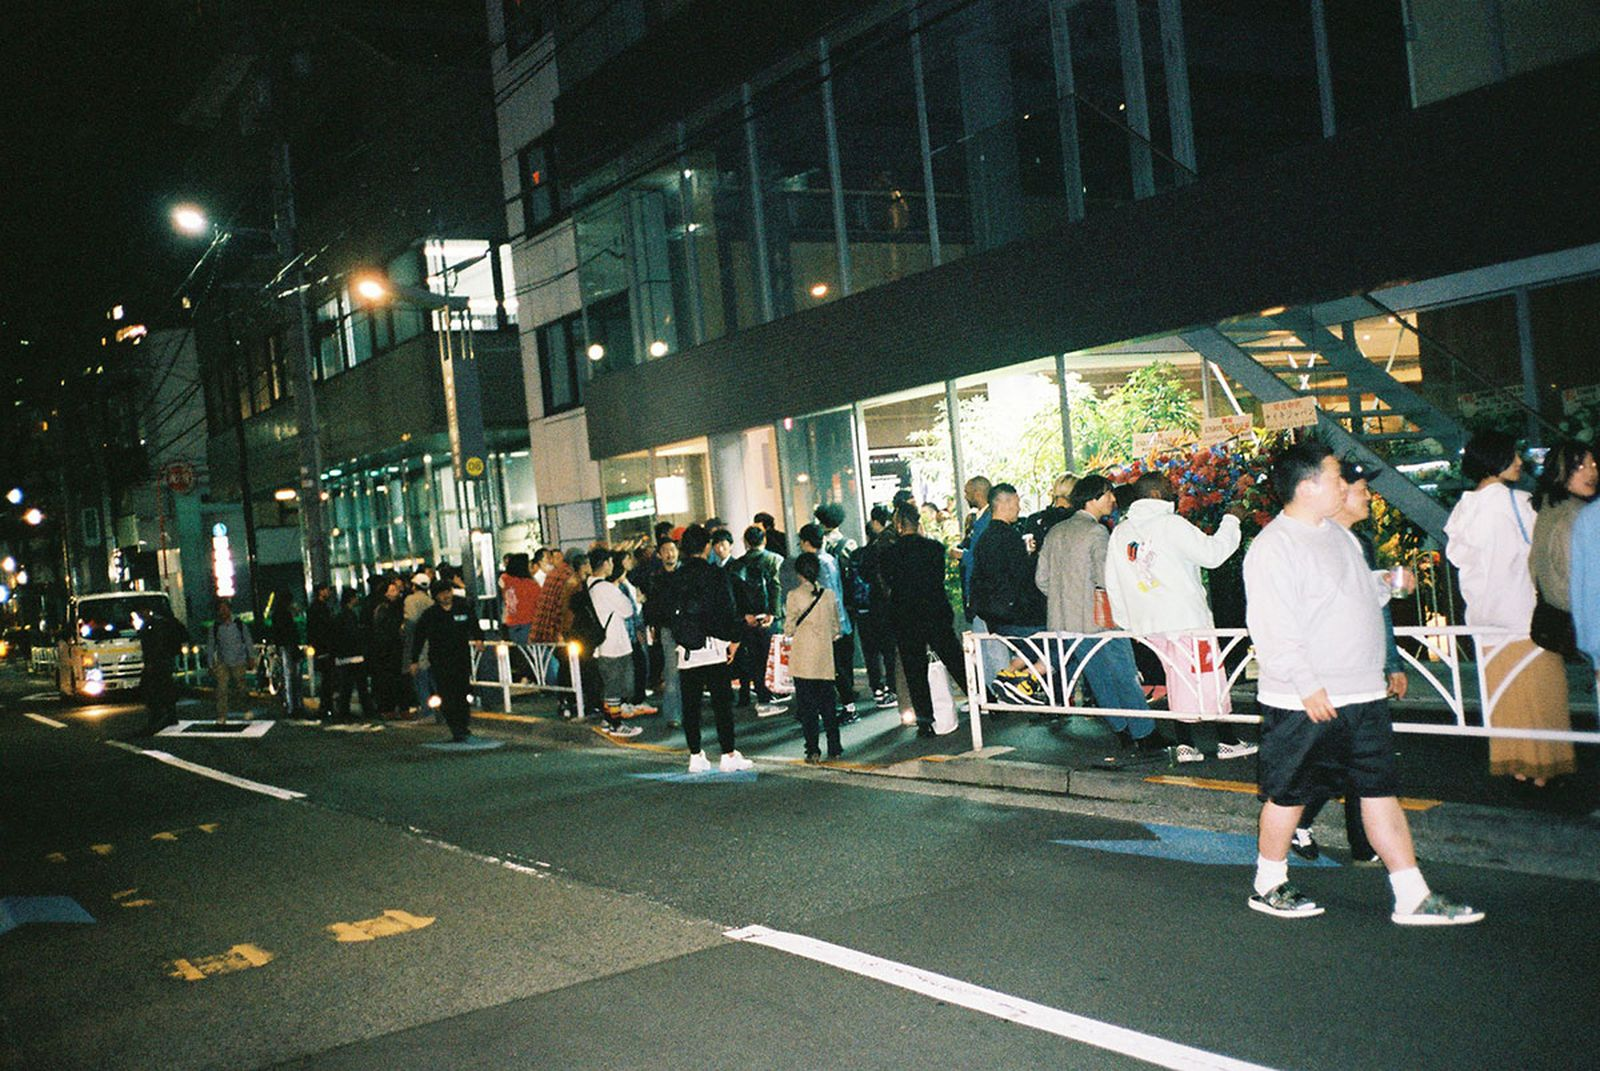 Union Tokyo Japan Highsnobiety prov the real mccoys have a good time